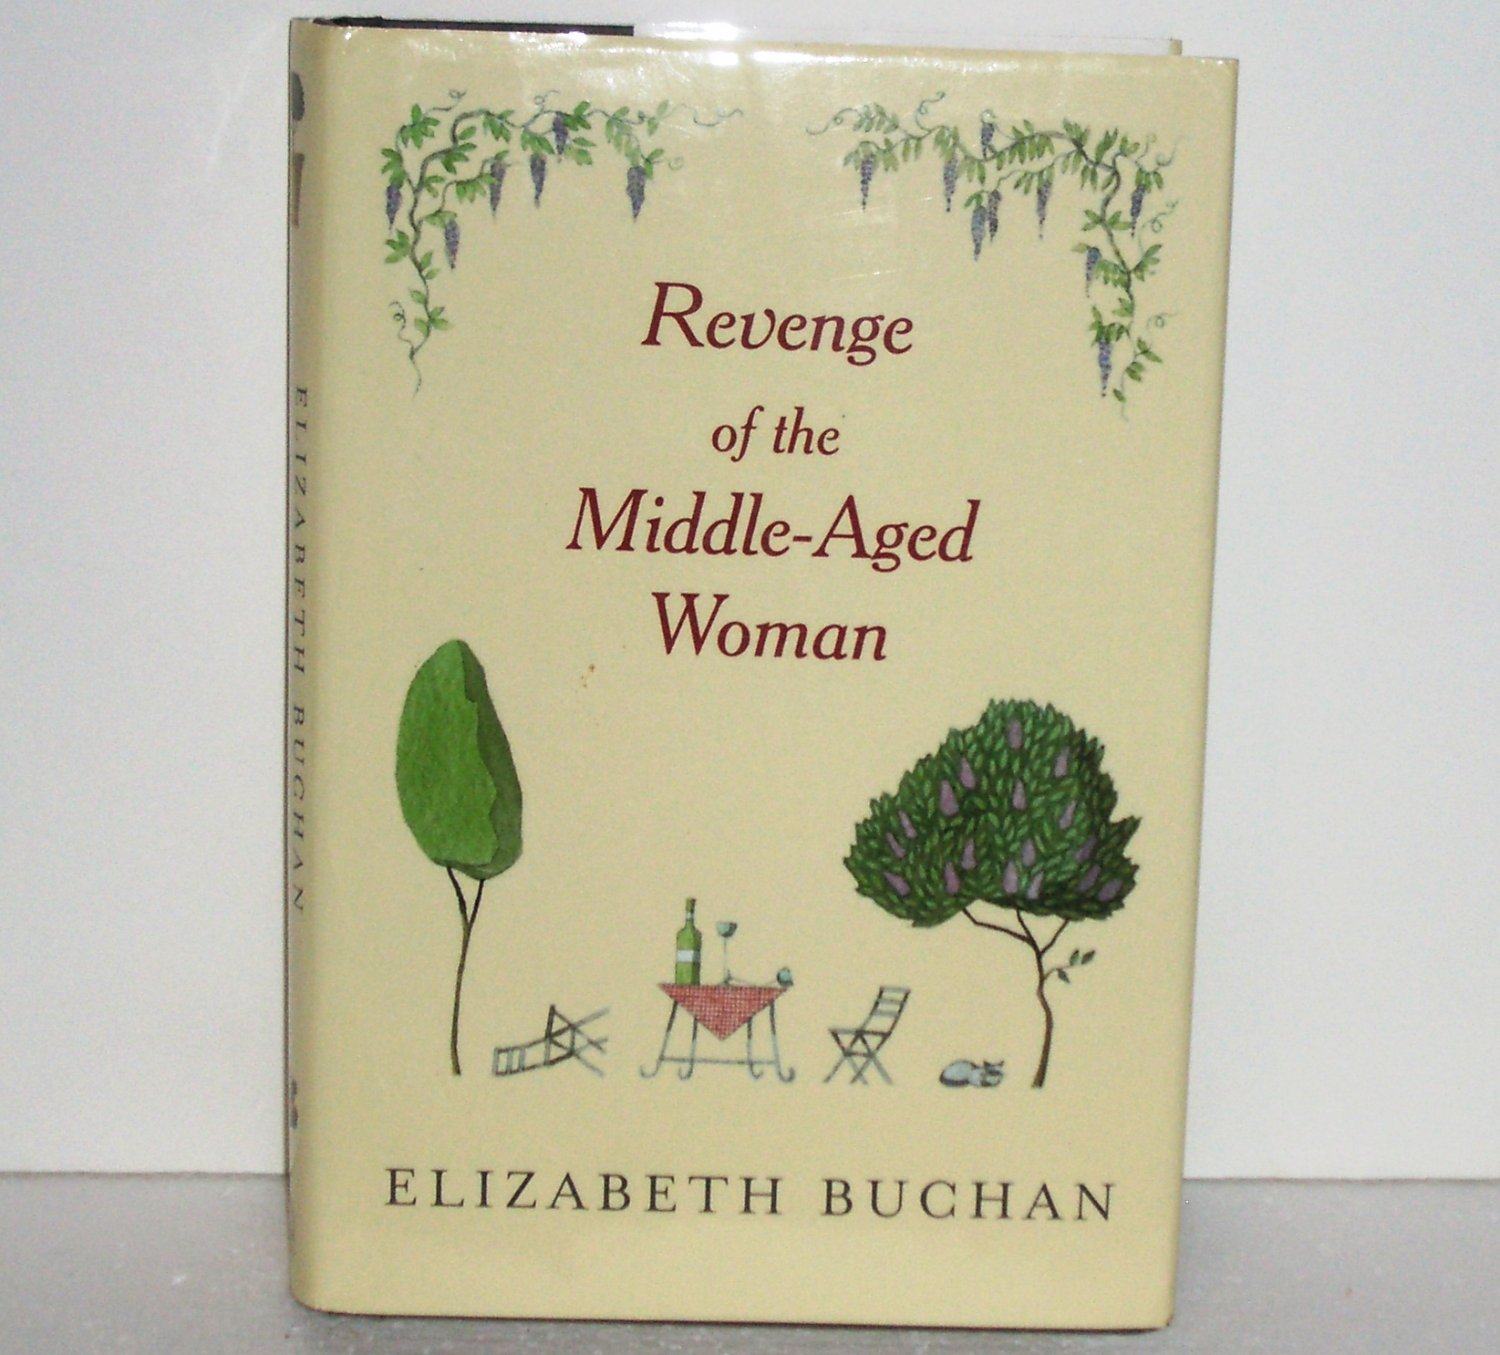 Revenge of the Middle-Aged Woman by ELIZABETH BUCHAN Contemporary Romance Hardcover Dust Jacket 2003